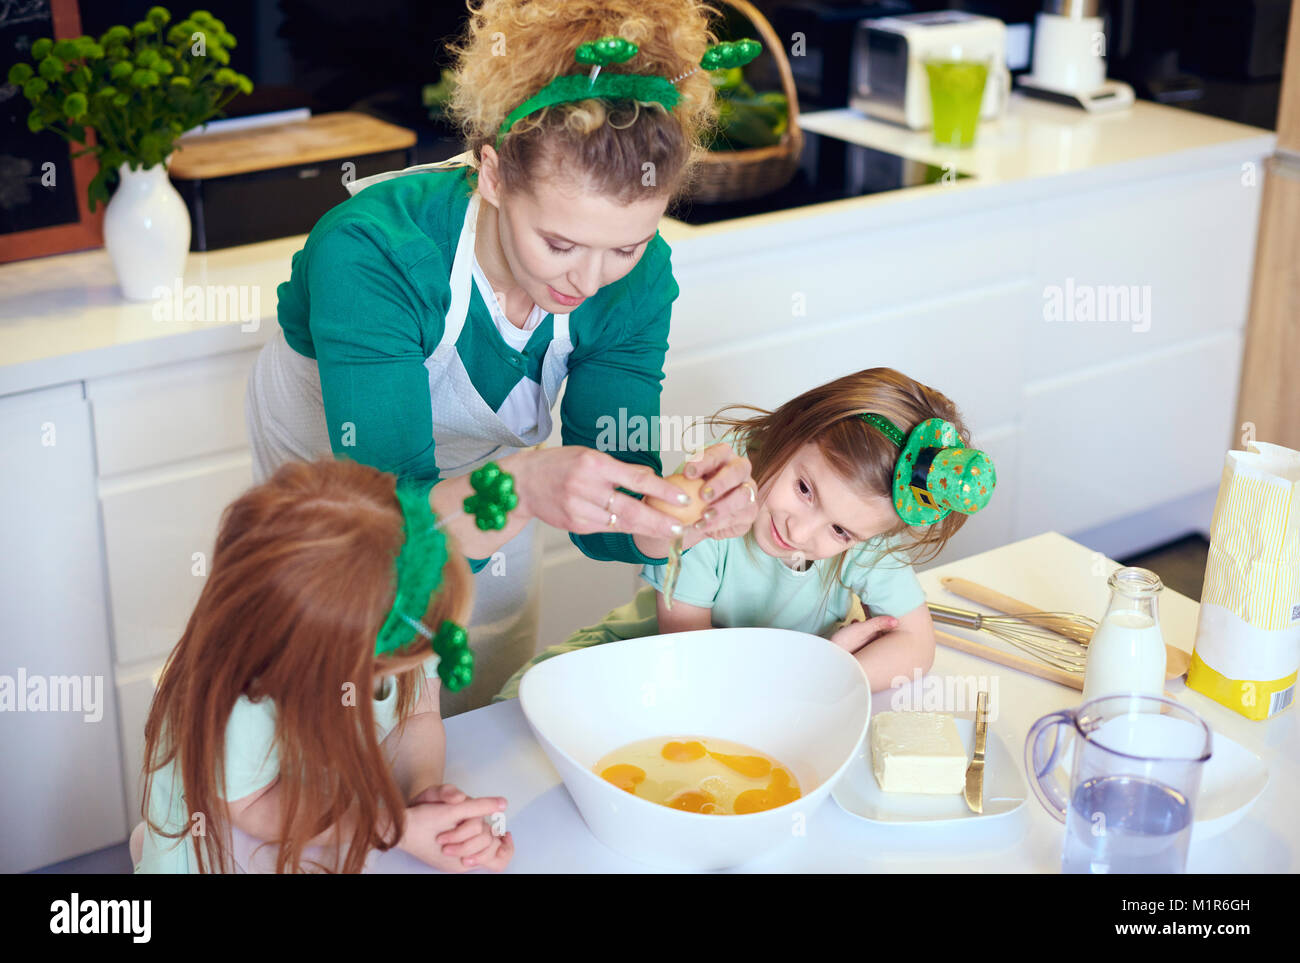 Interested children learning how to cook - Stock Image